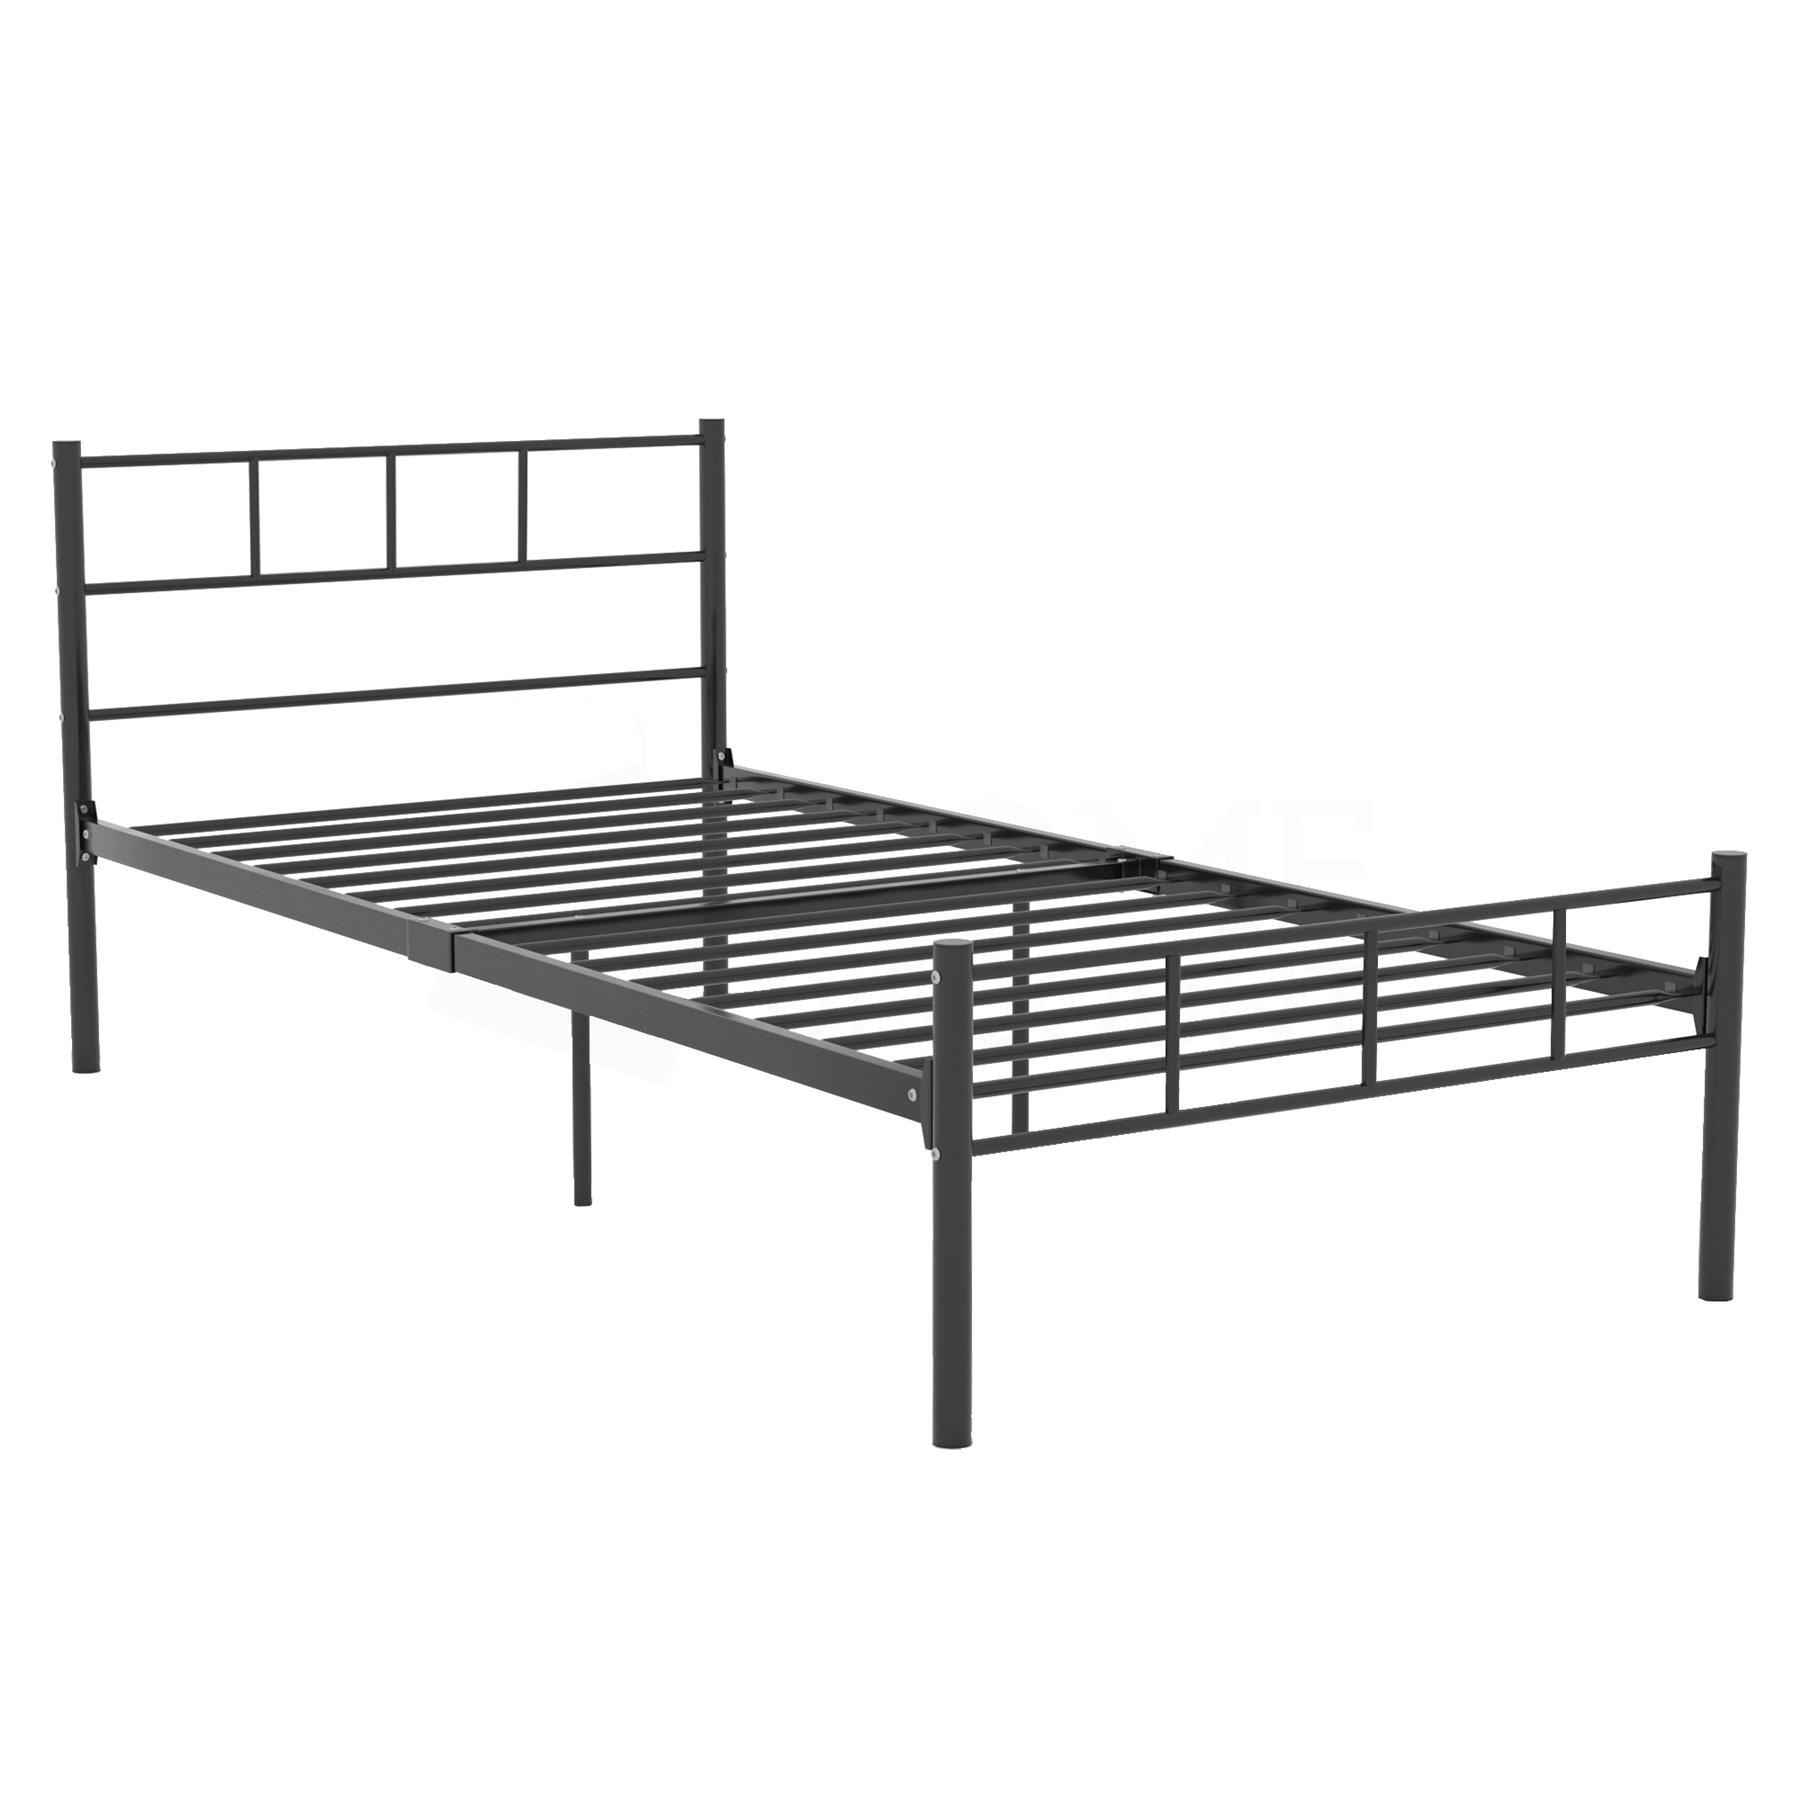 Dorset Single Double King Size Bed Metal Steel Frame 4ft6 5ft Modern Bedroom